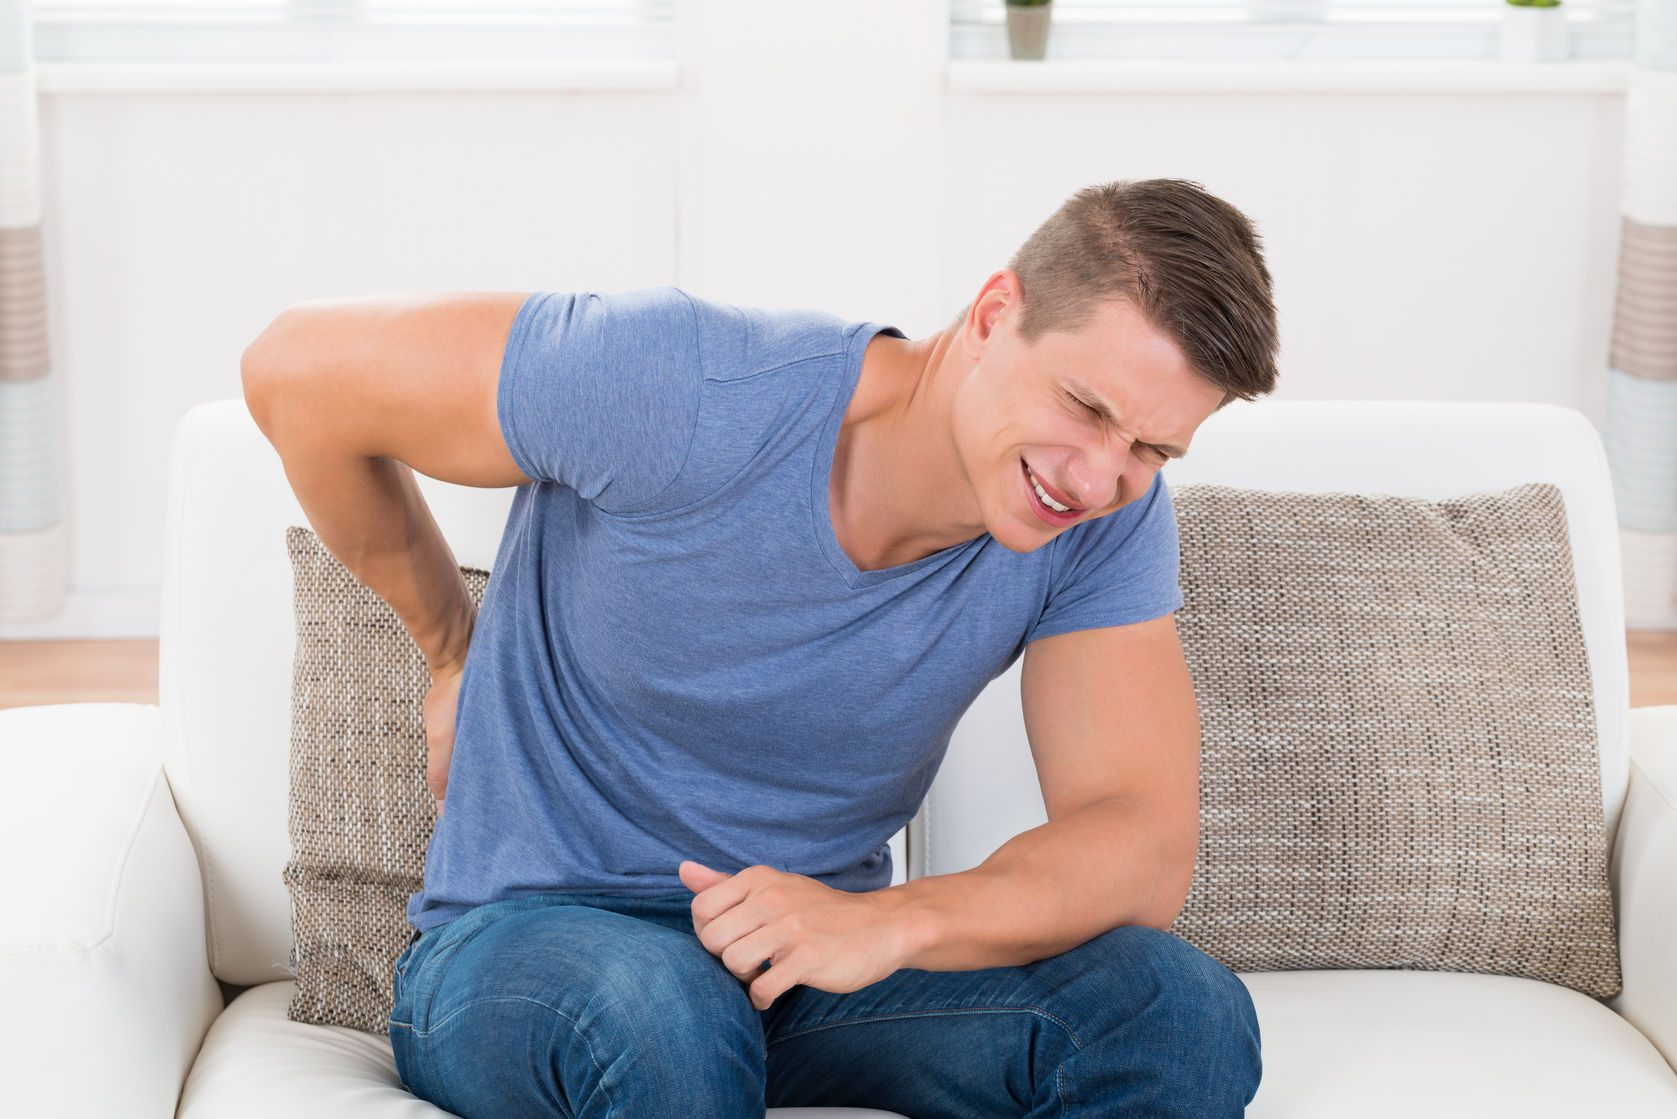 young man on sofa suffering from backpain at home